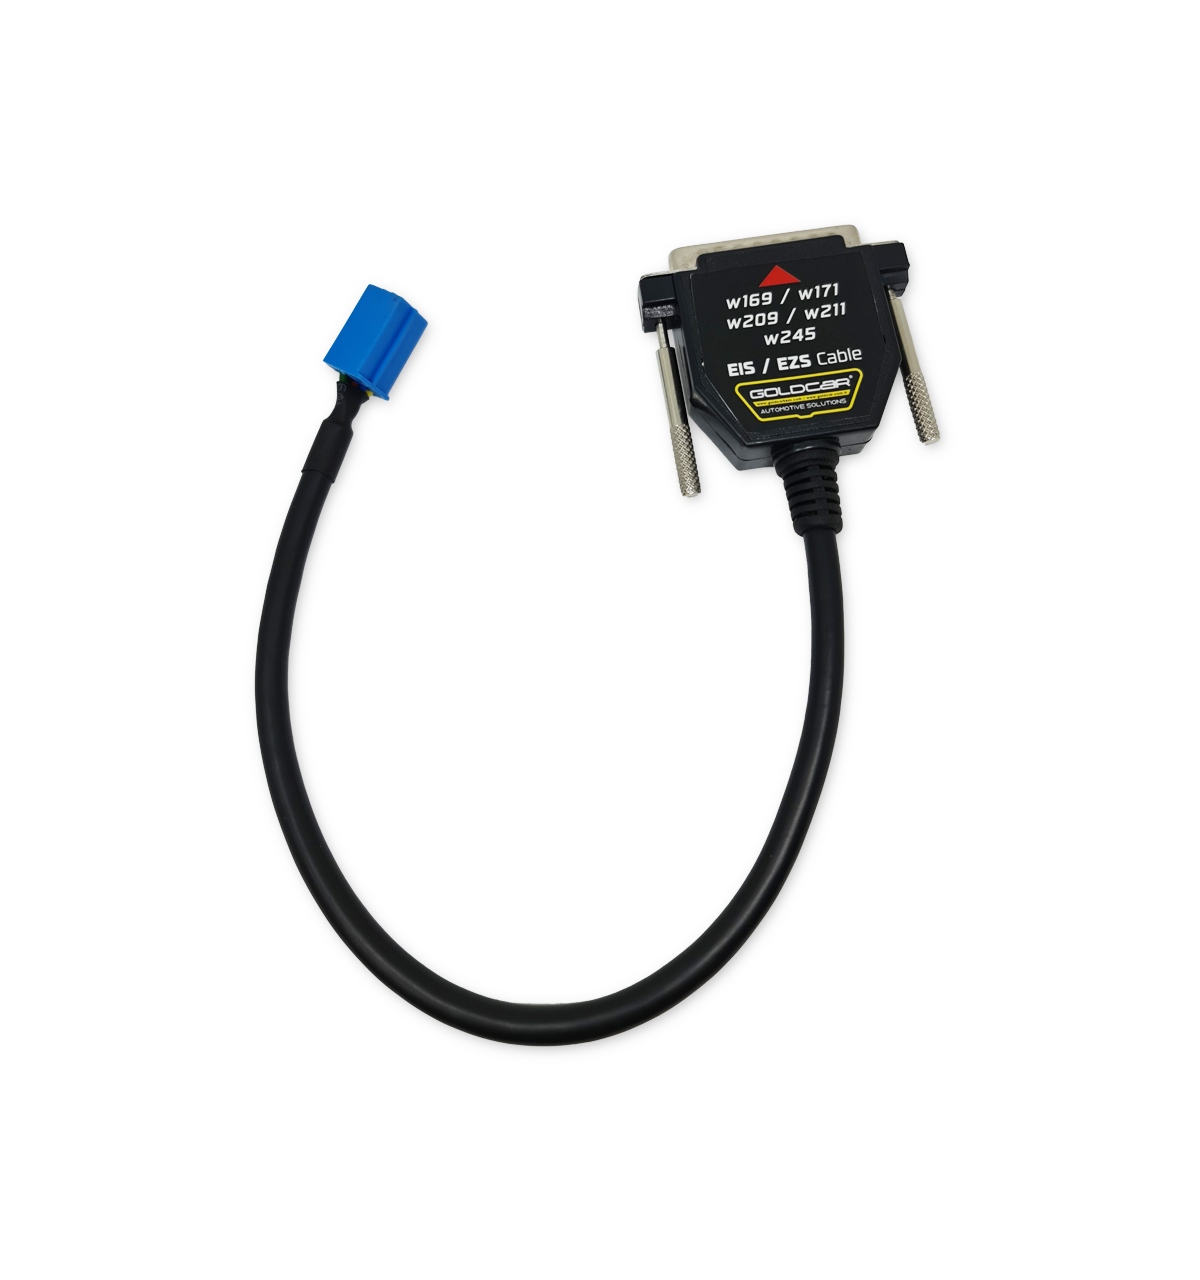 Professional MB Testing Tool EIS/ESL Gateway Dashboard Gearbox ECU Compatible with VVDI MB TOOL – ABRITES